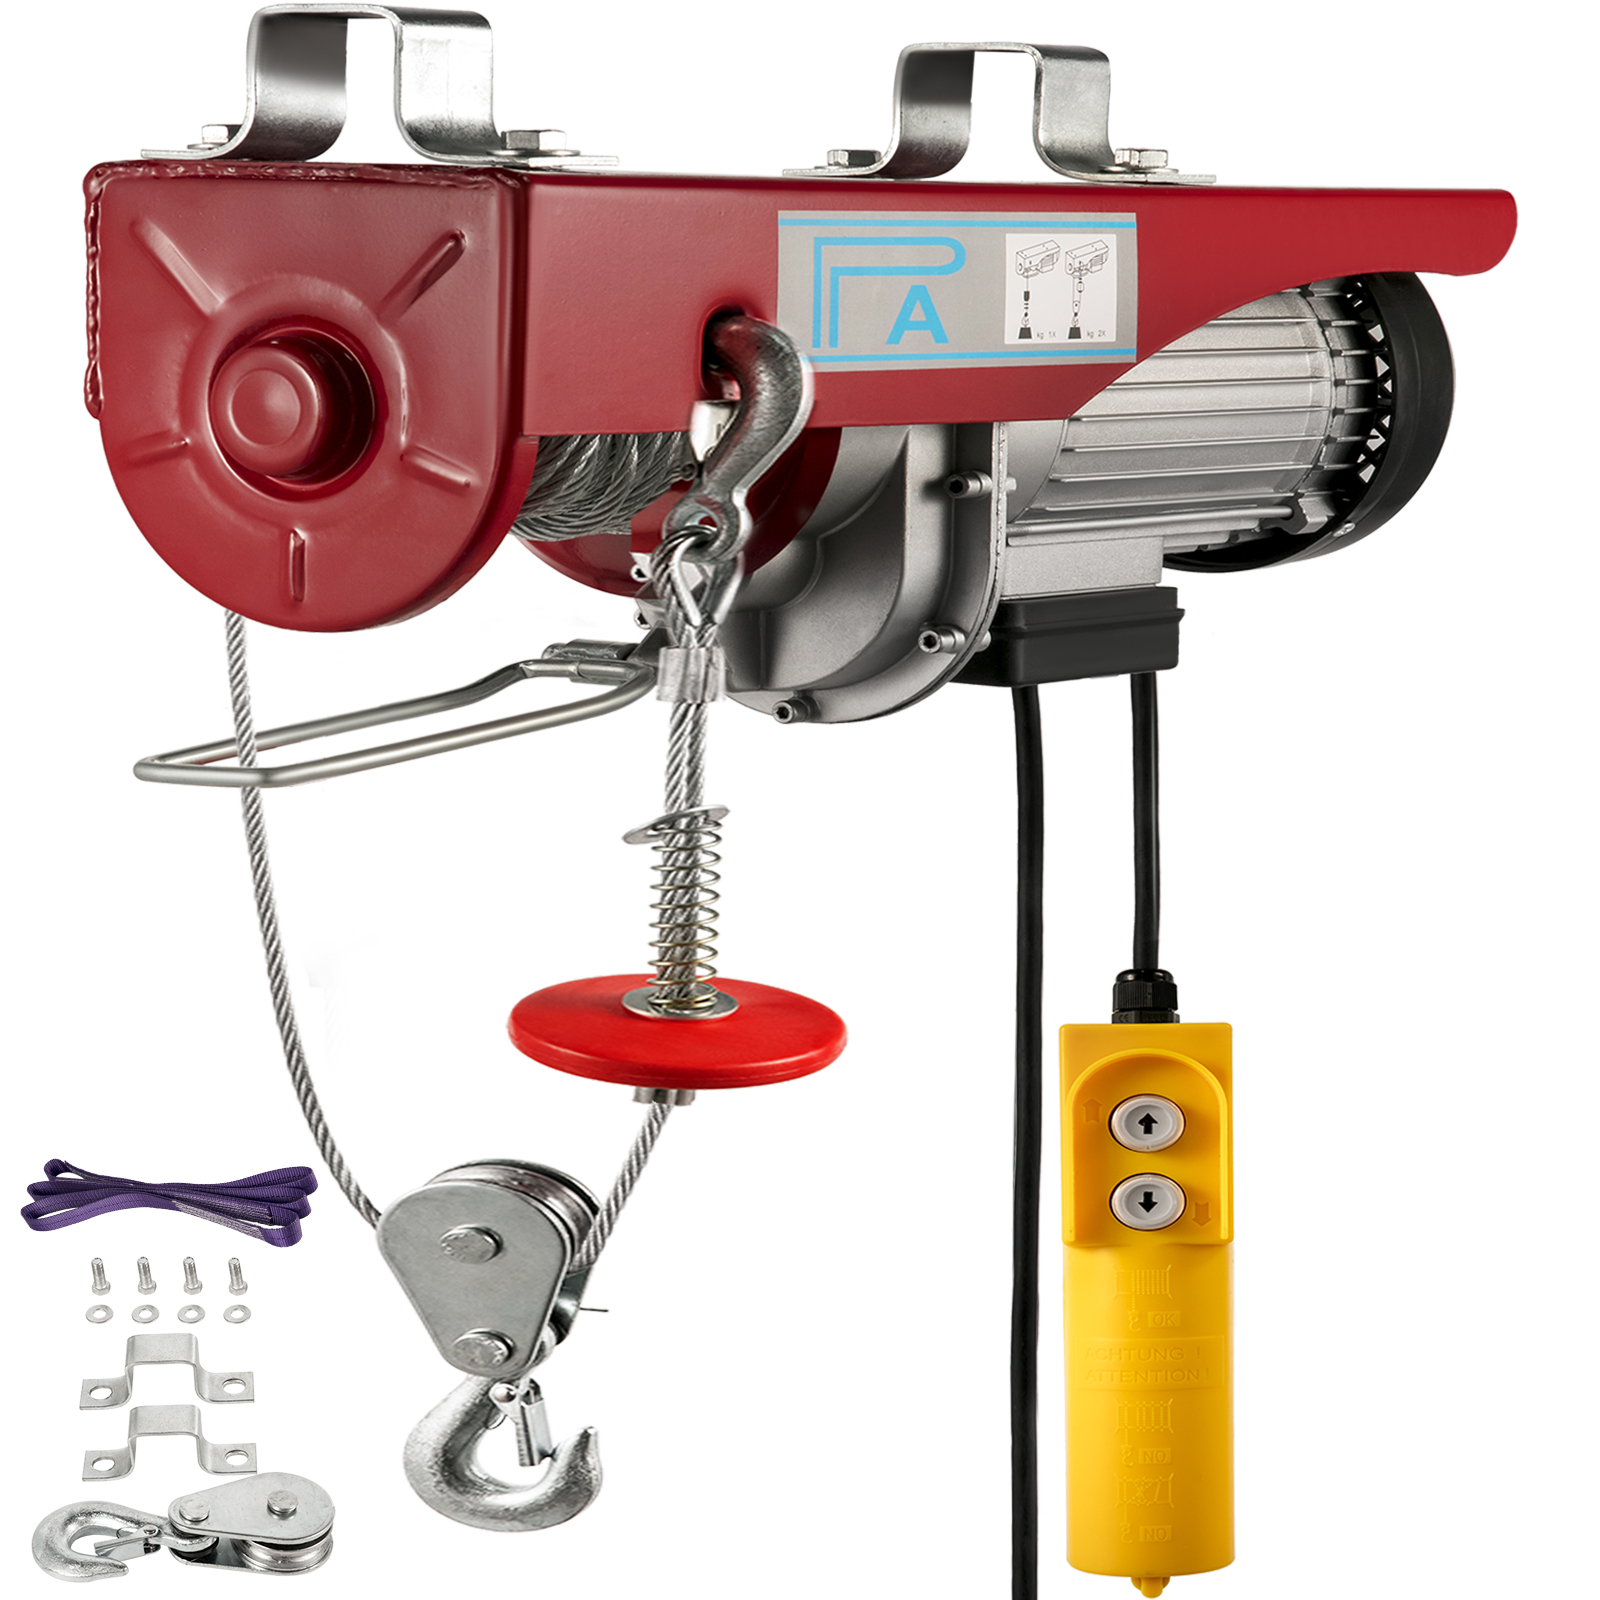 VEVOR 2200LBS Electric Hoist Winch with 12M Wire Rope and Wired Remote Control New Portable Lift Auto Overhead Garage